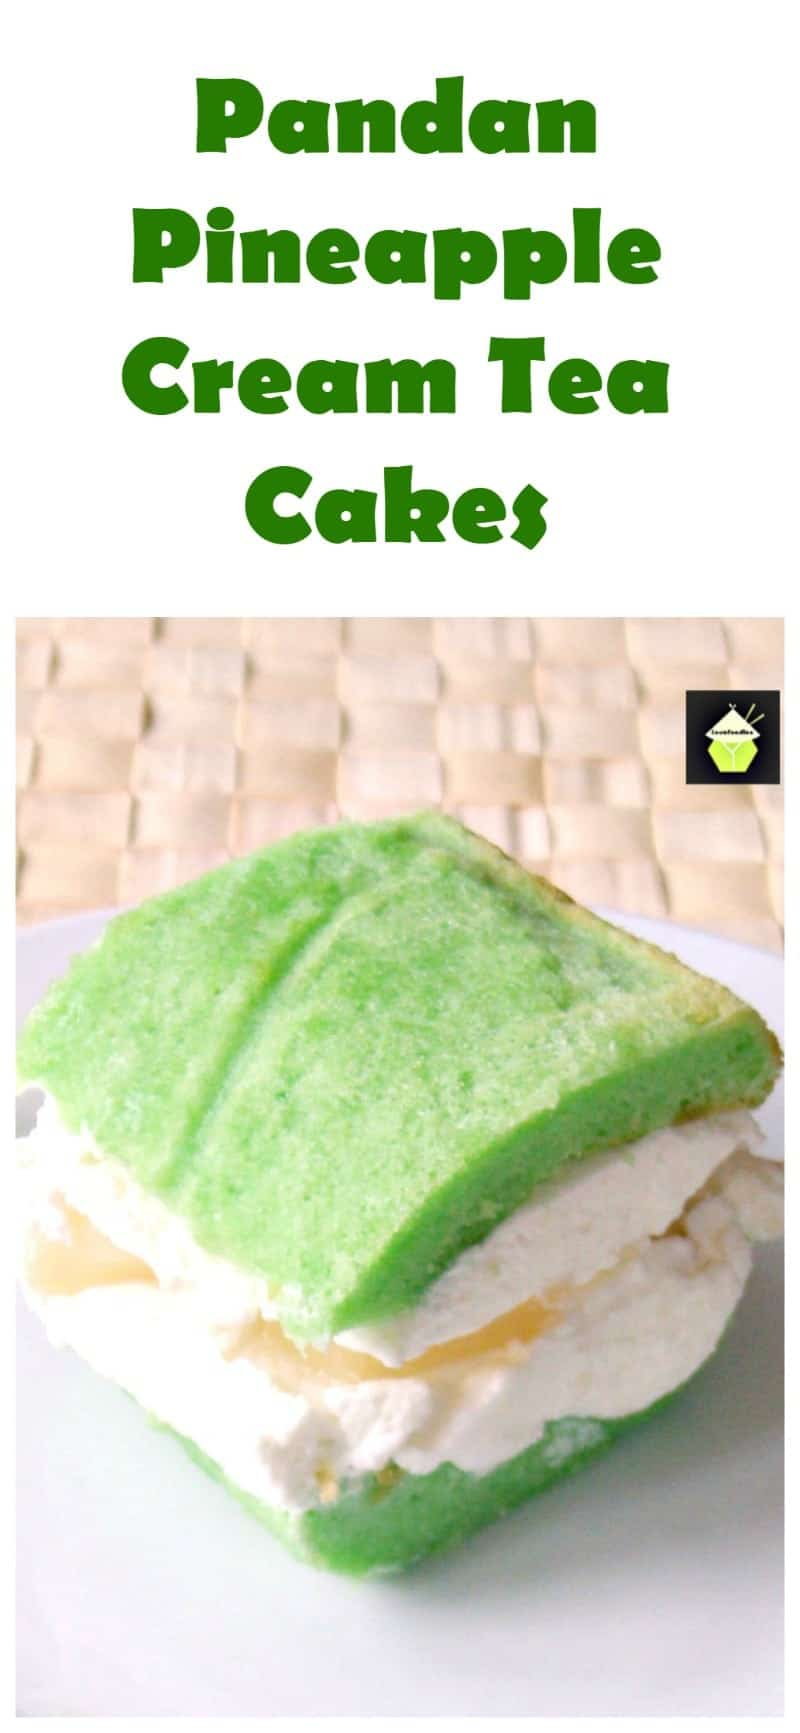 Pandan Pineapple Cream Tea Cakes. These are a lovely soft chiffon cake filled with fresh whipped cream and pineapple pieces. Always perfect for a tea party! You can also swap the Pandan for any flavor you like!